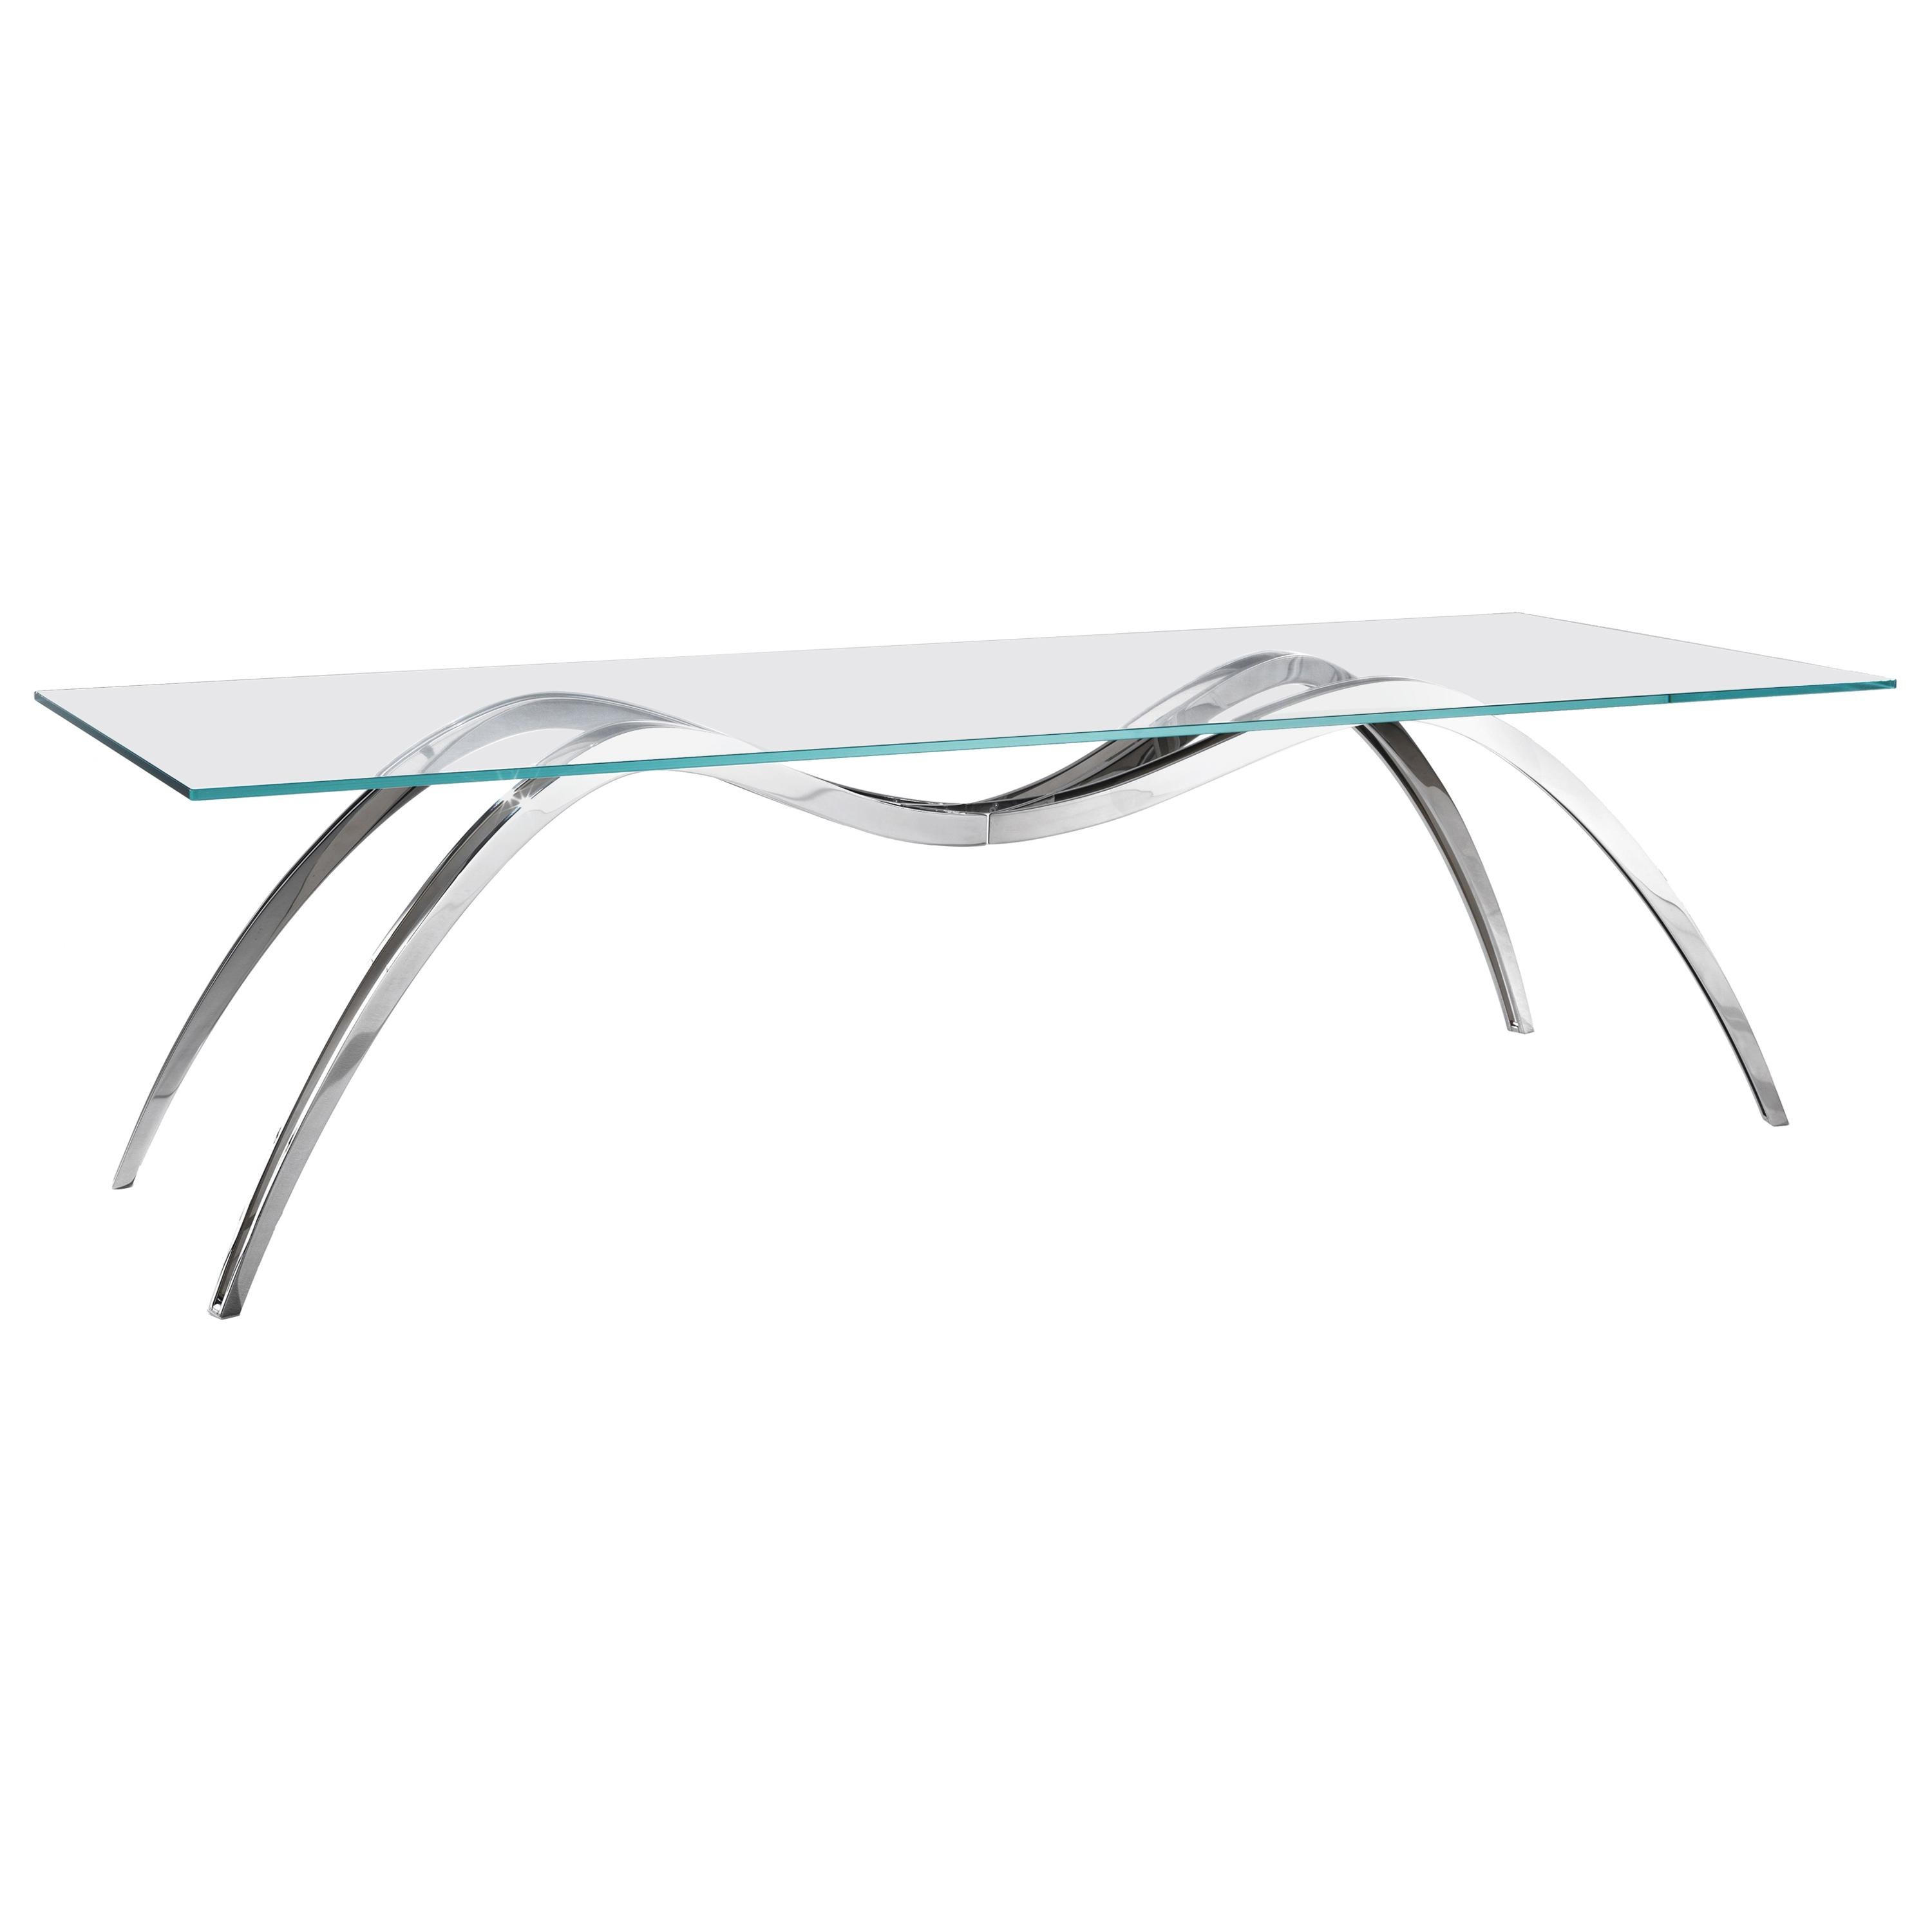 Dining Table Rectangular Glass Crystal Steel Italian Contemporary Design